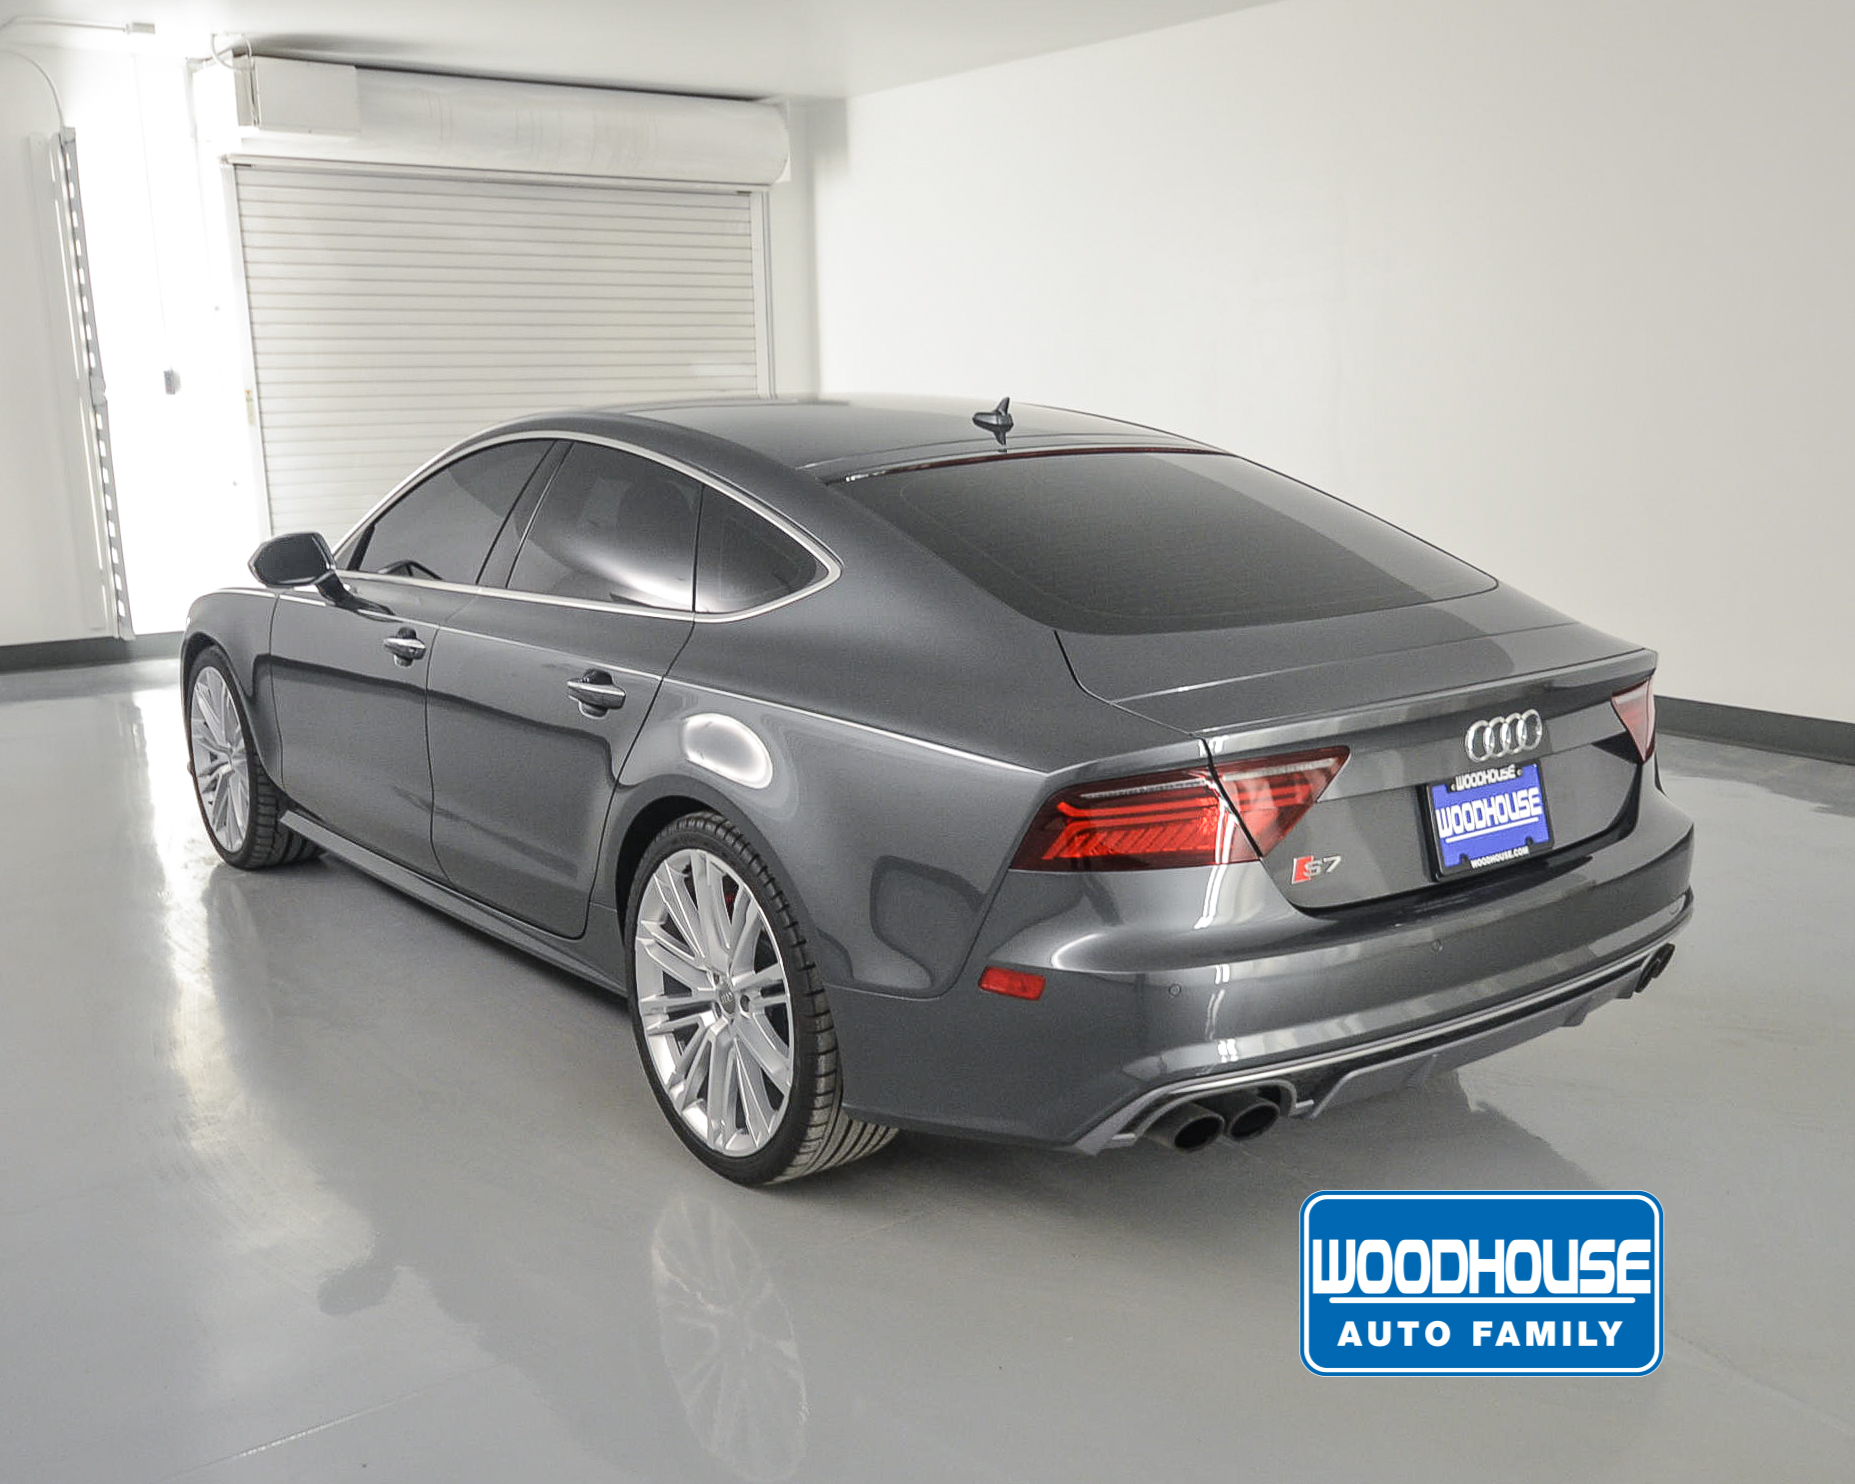 Woodhouse Used 2018 Audi S7 For Sale Porsche Omaha